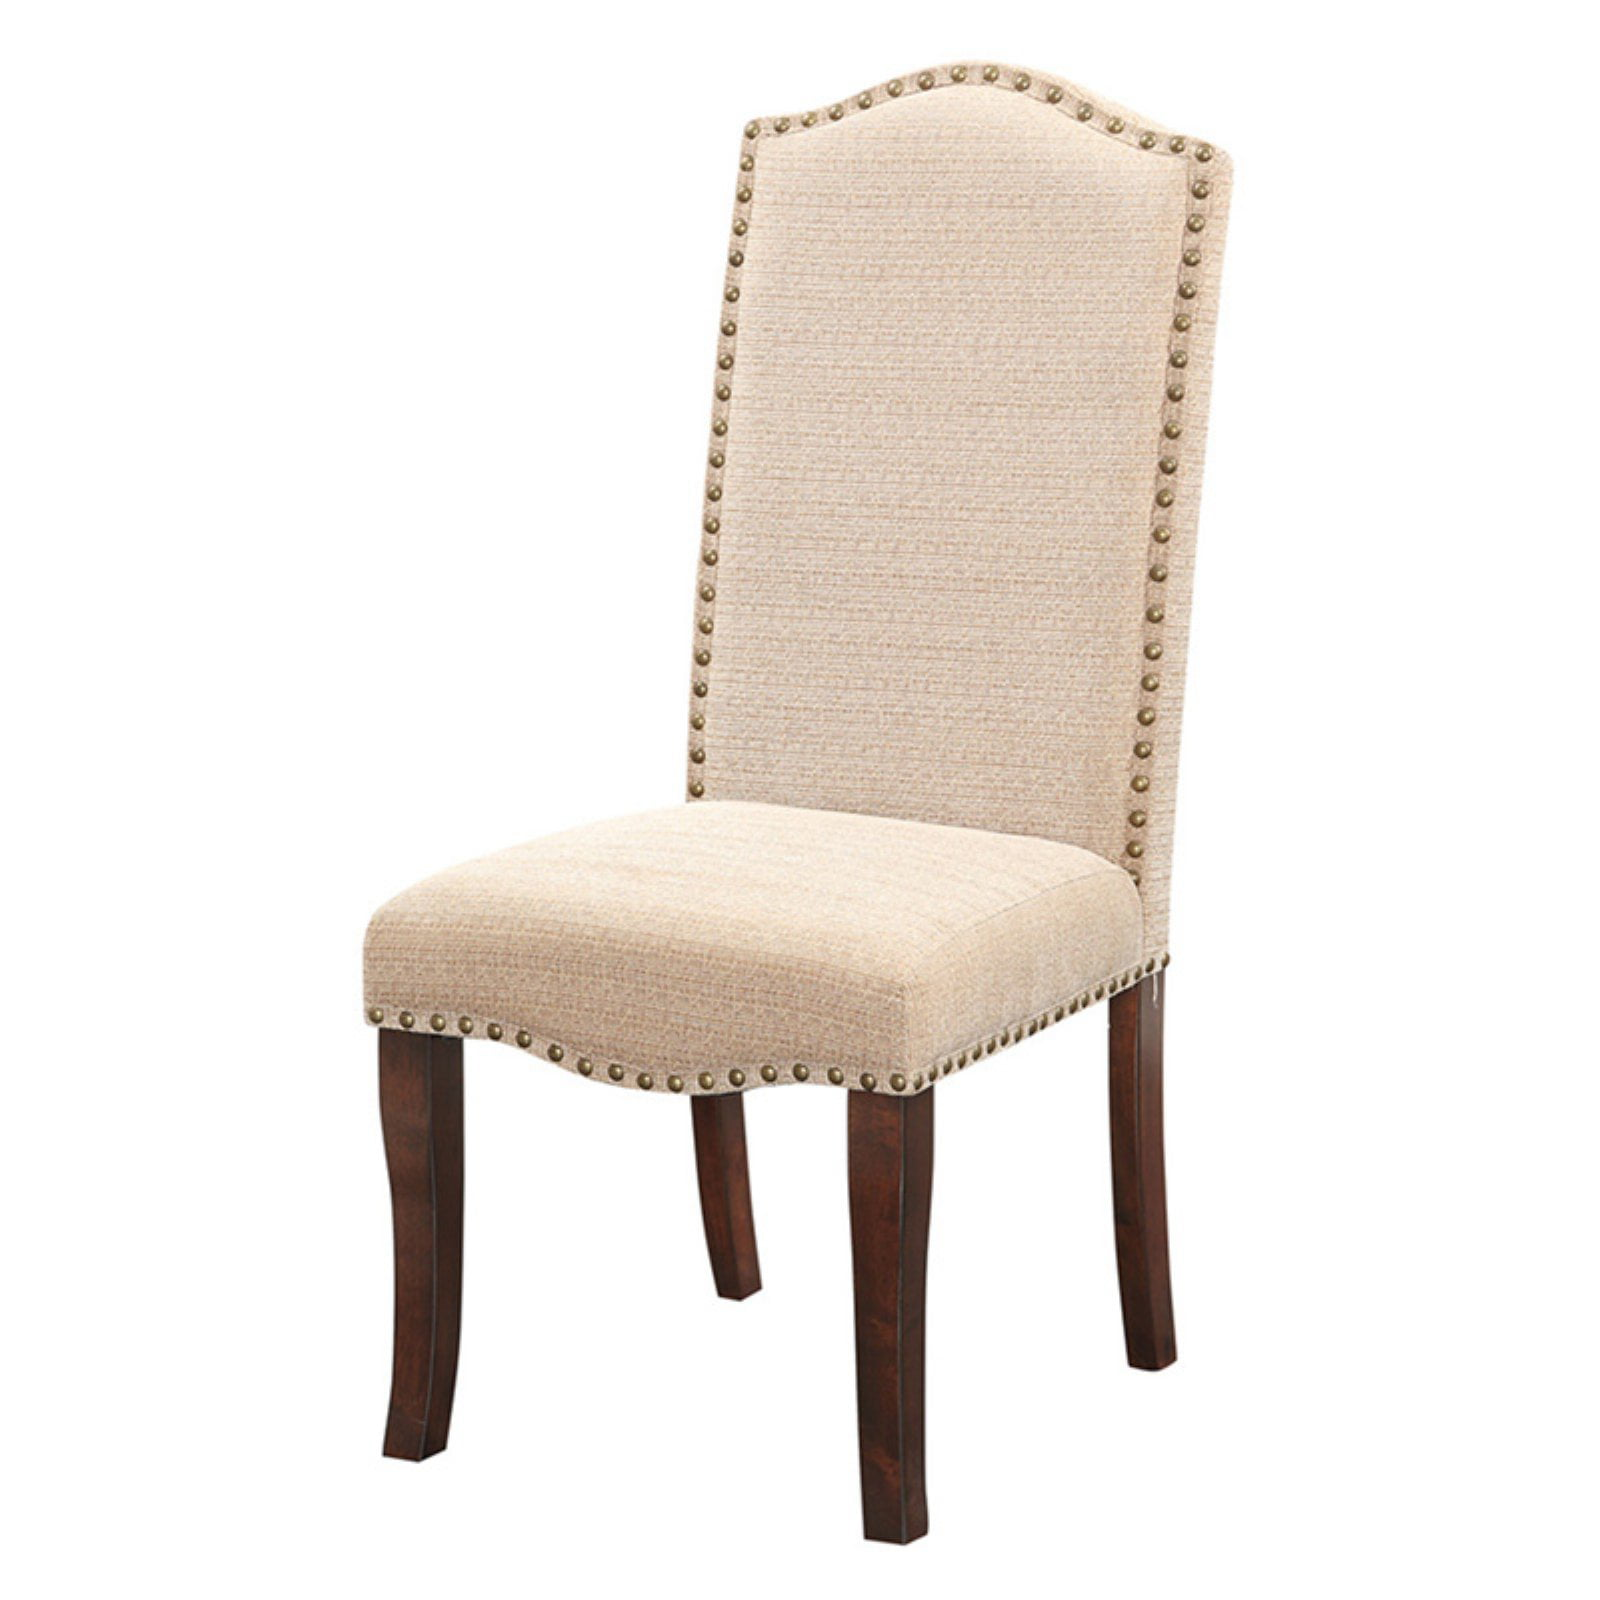 Set Of 4 Country Cream Dining Chairs: K&B Furniture Upholstered Cream White Dining Chair